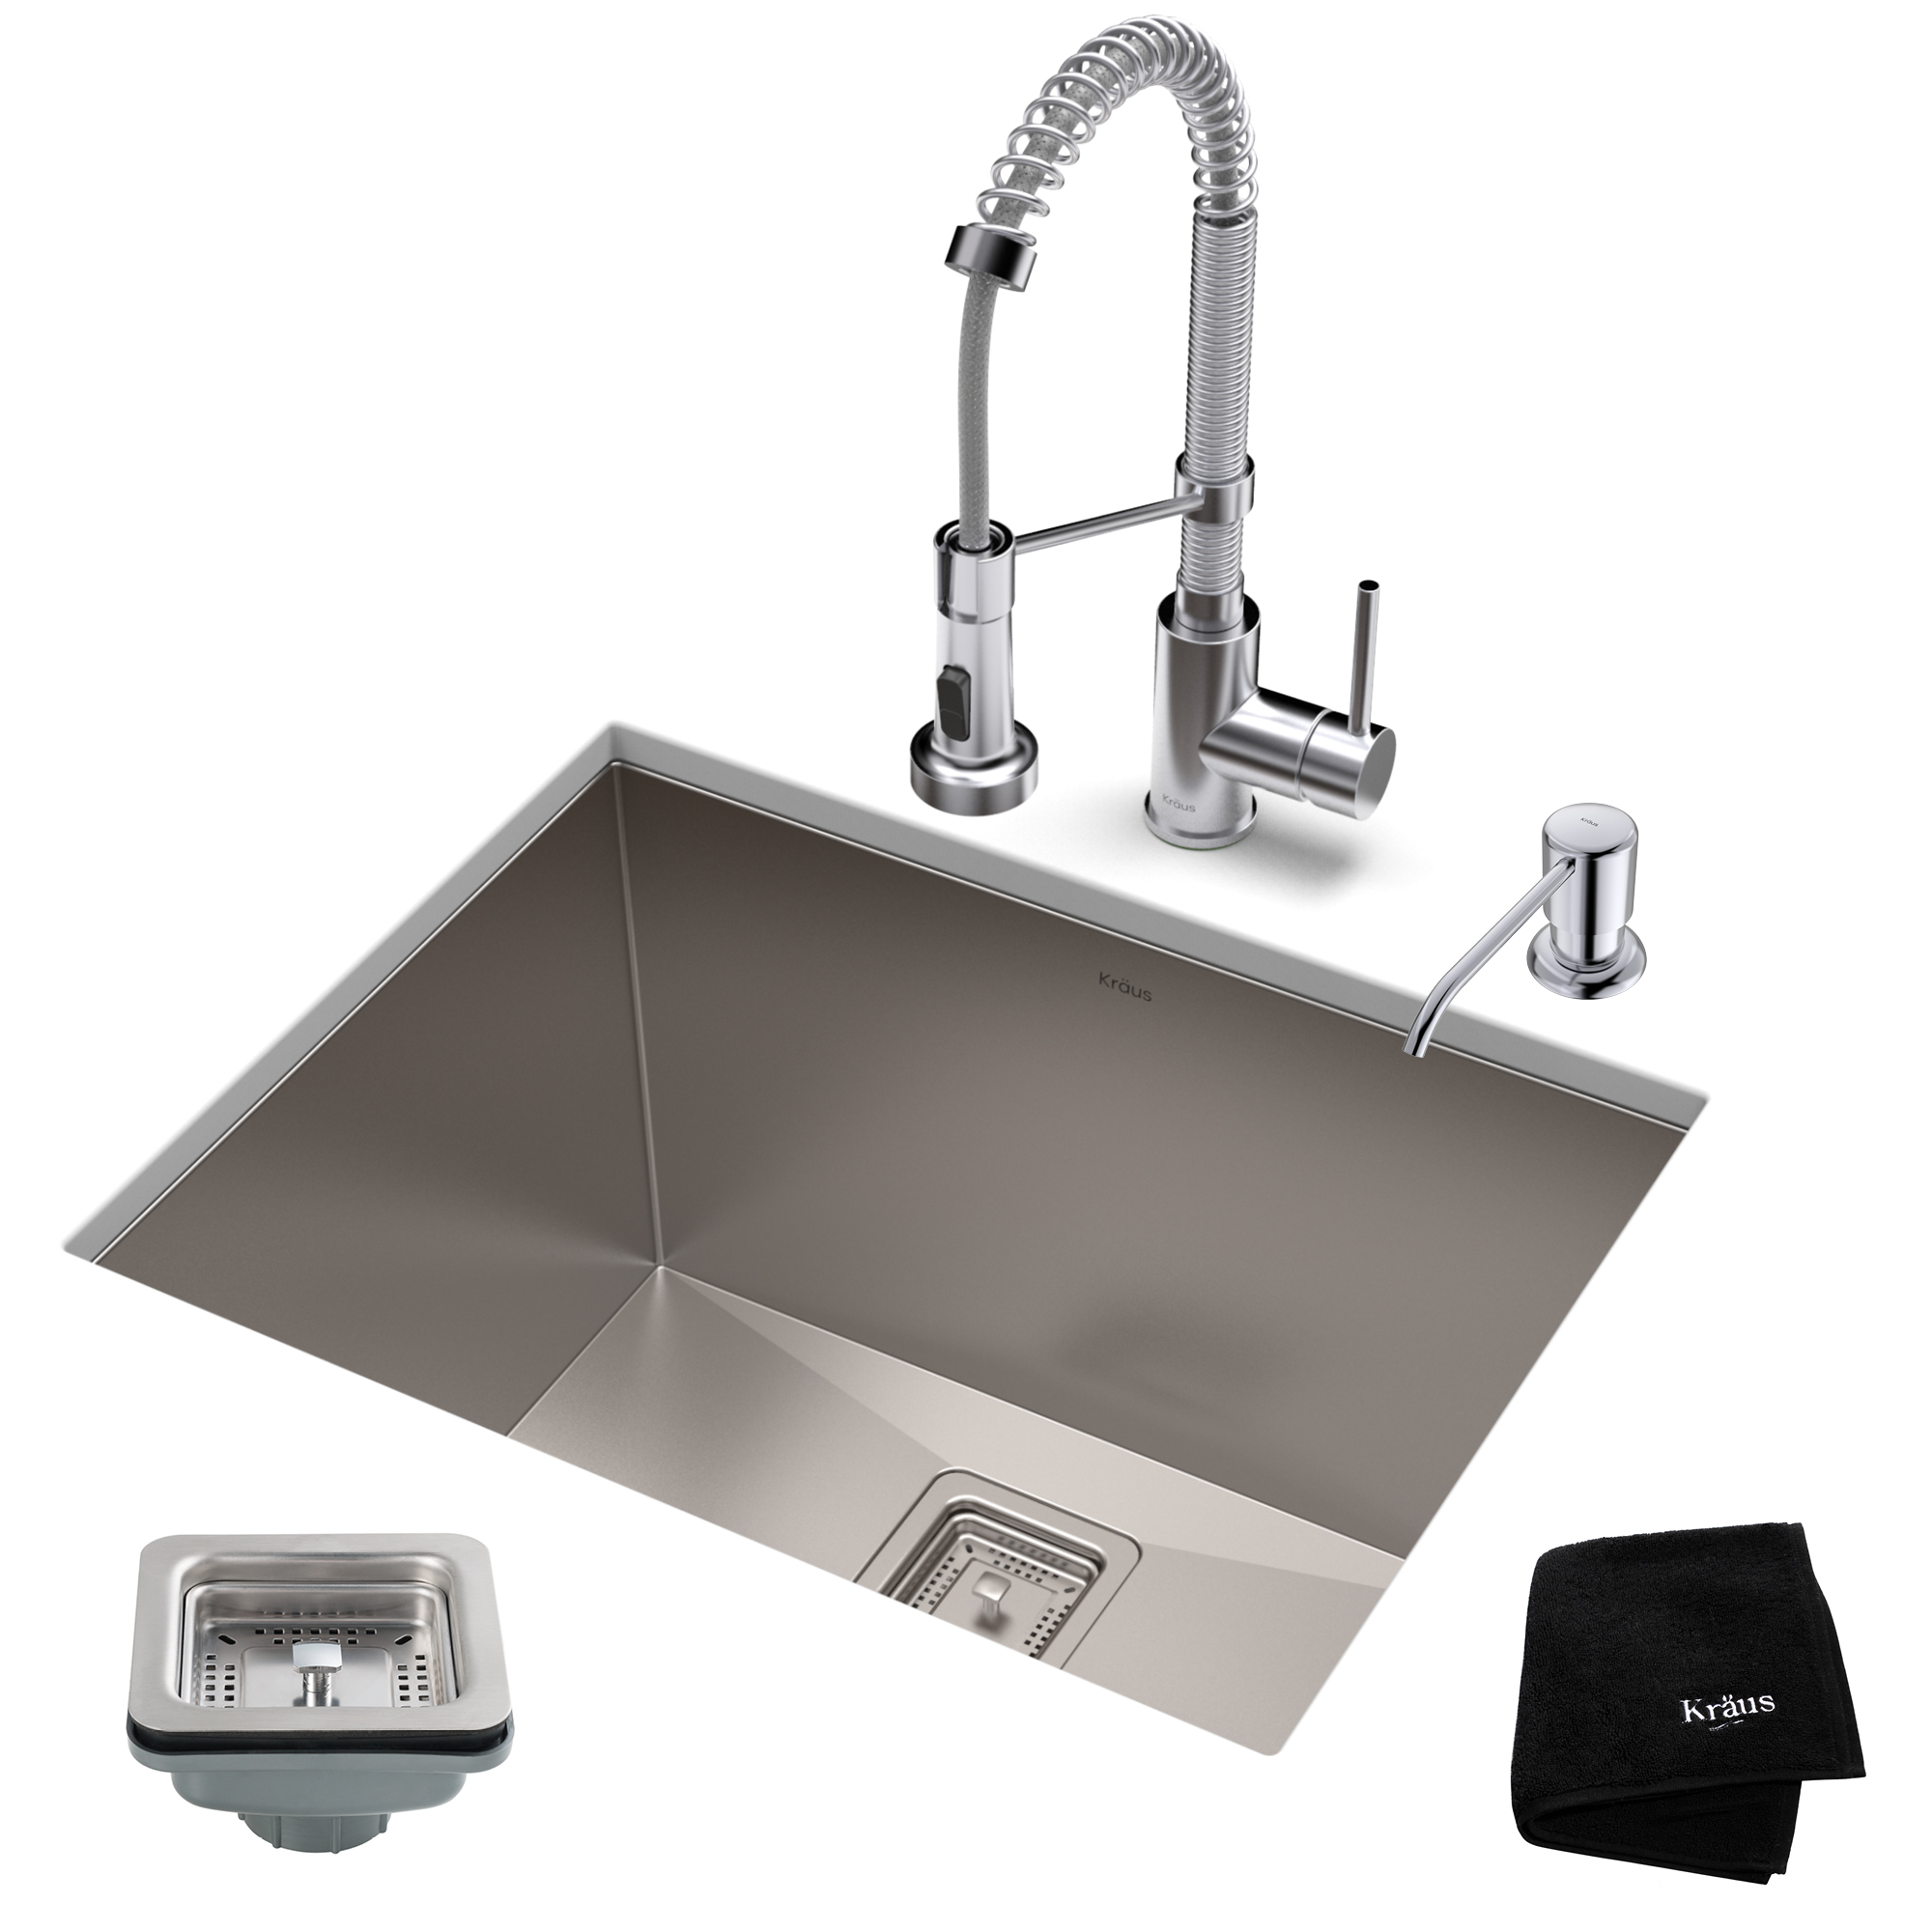 commercial pull down kitchen faucet aunt jemima curtains kraus set with pax stainless steel laundry